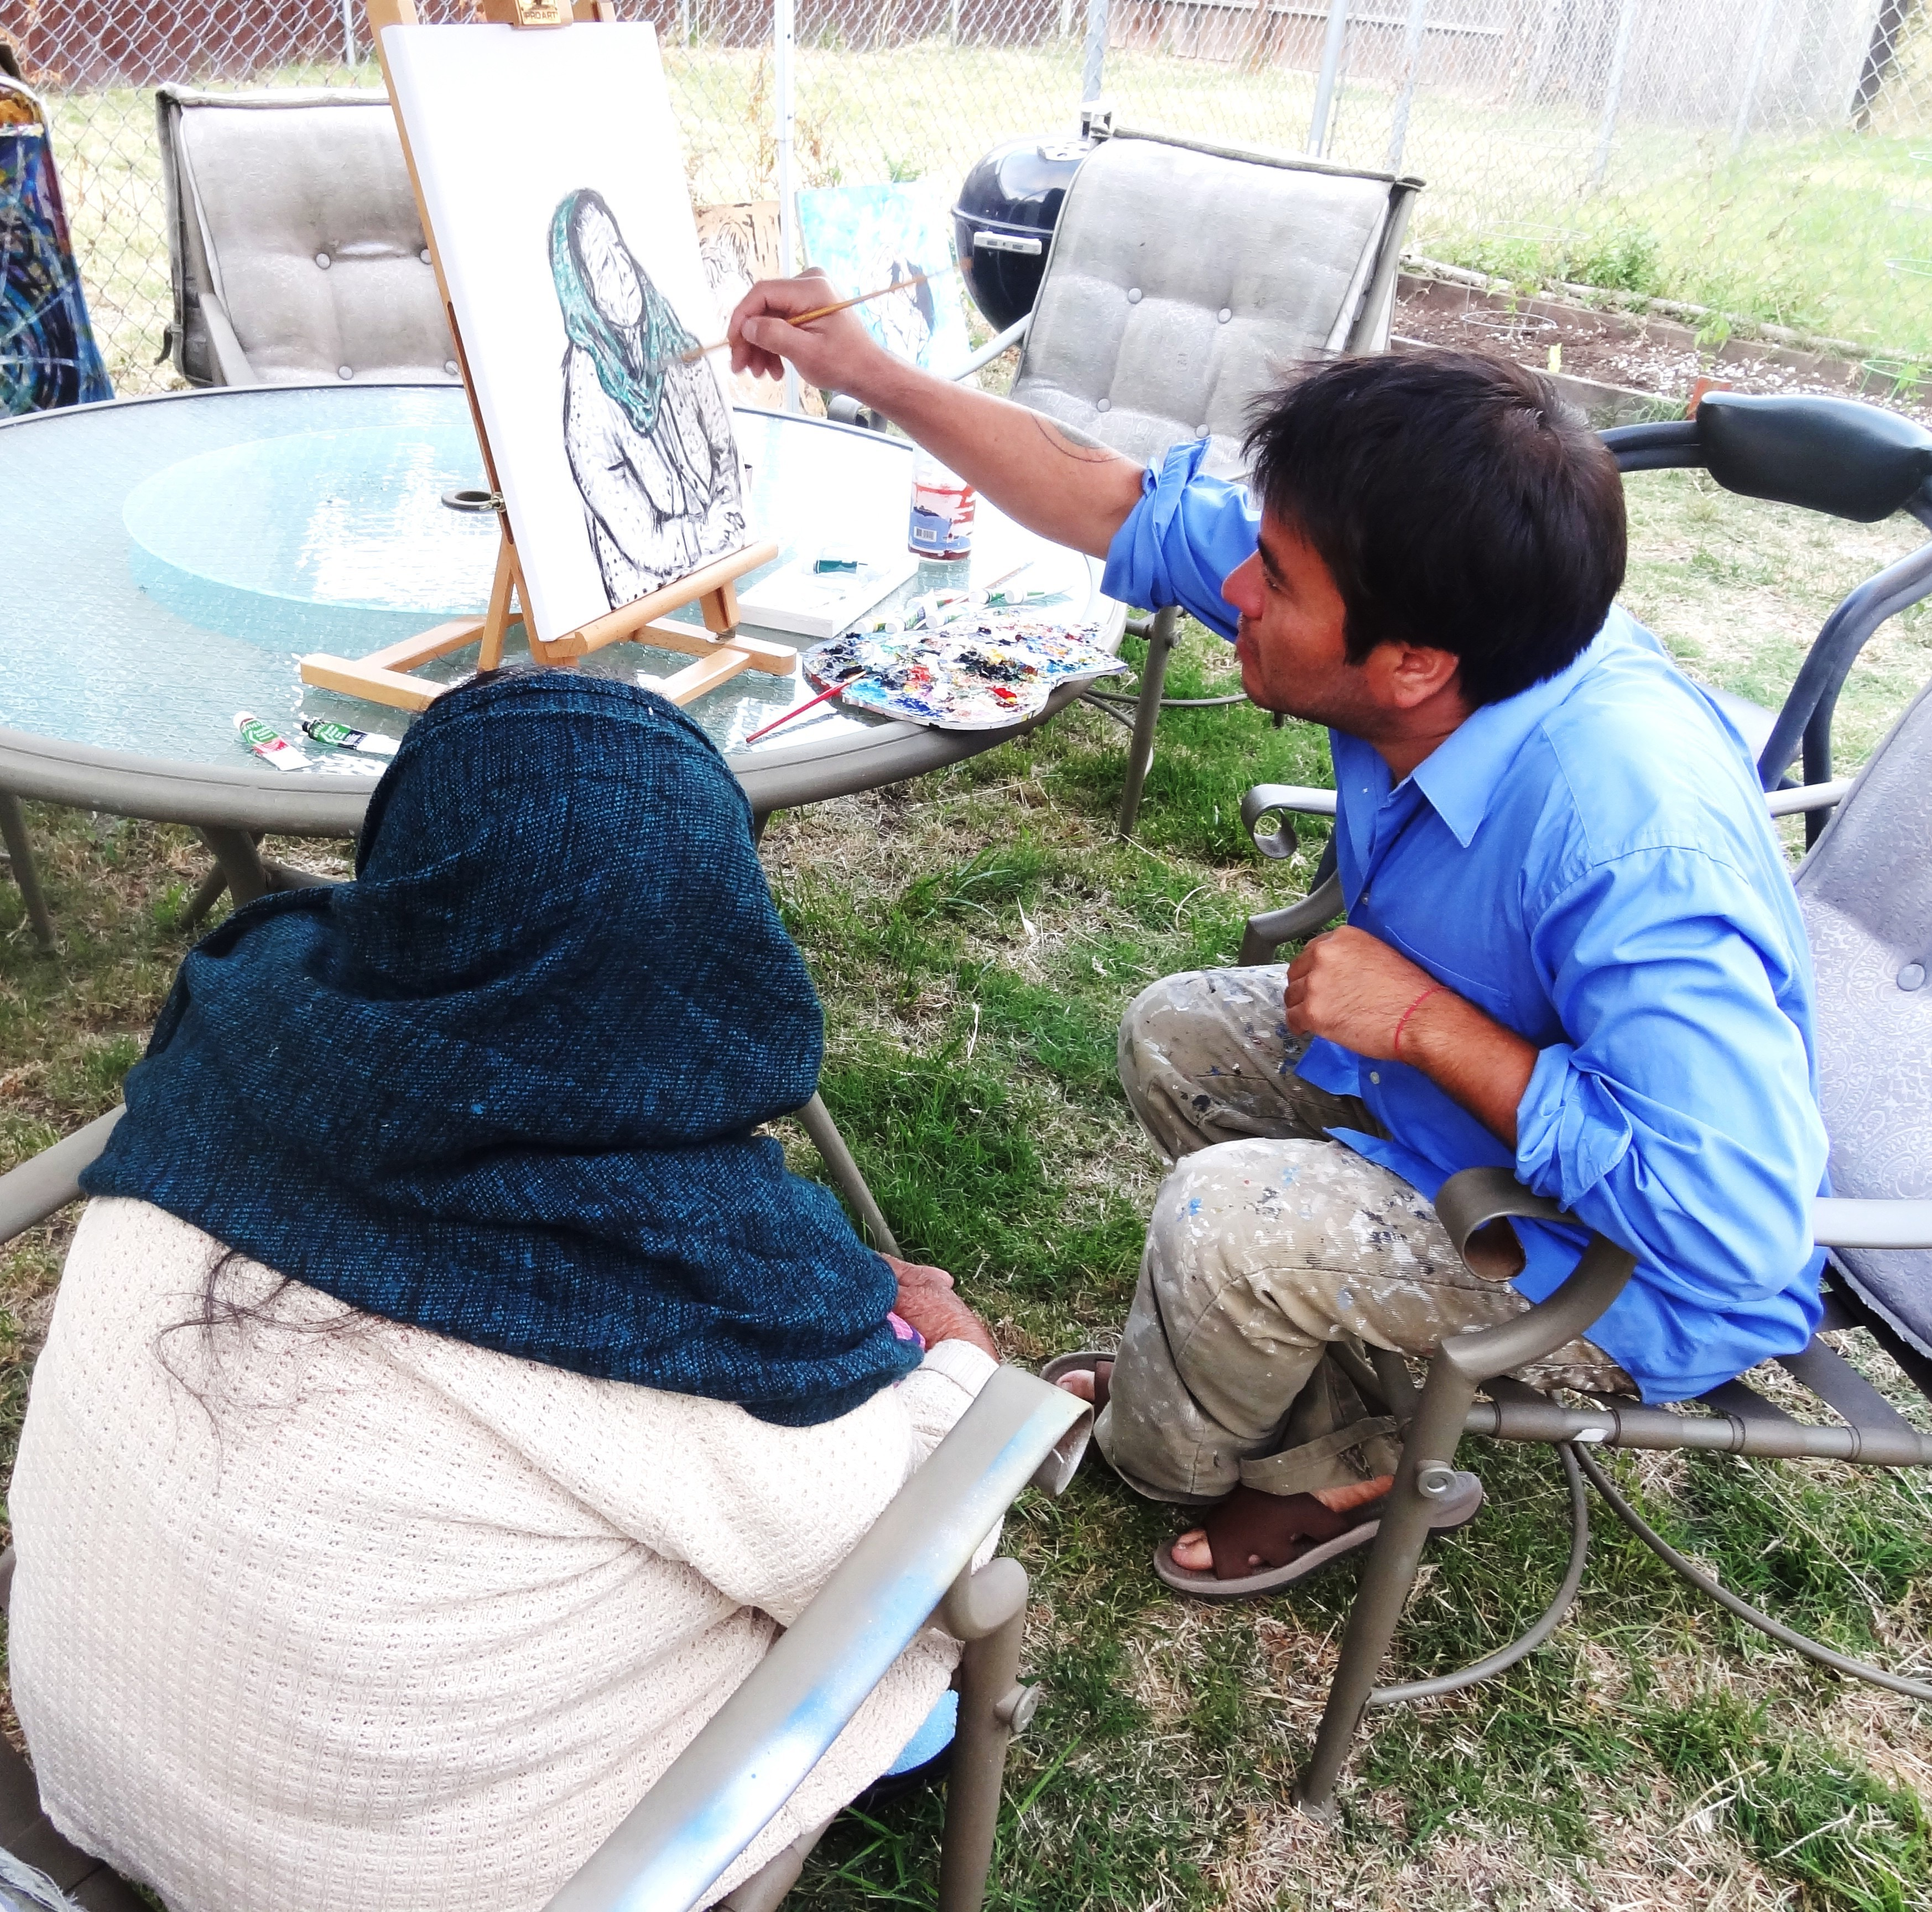 Abue painting